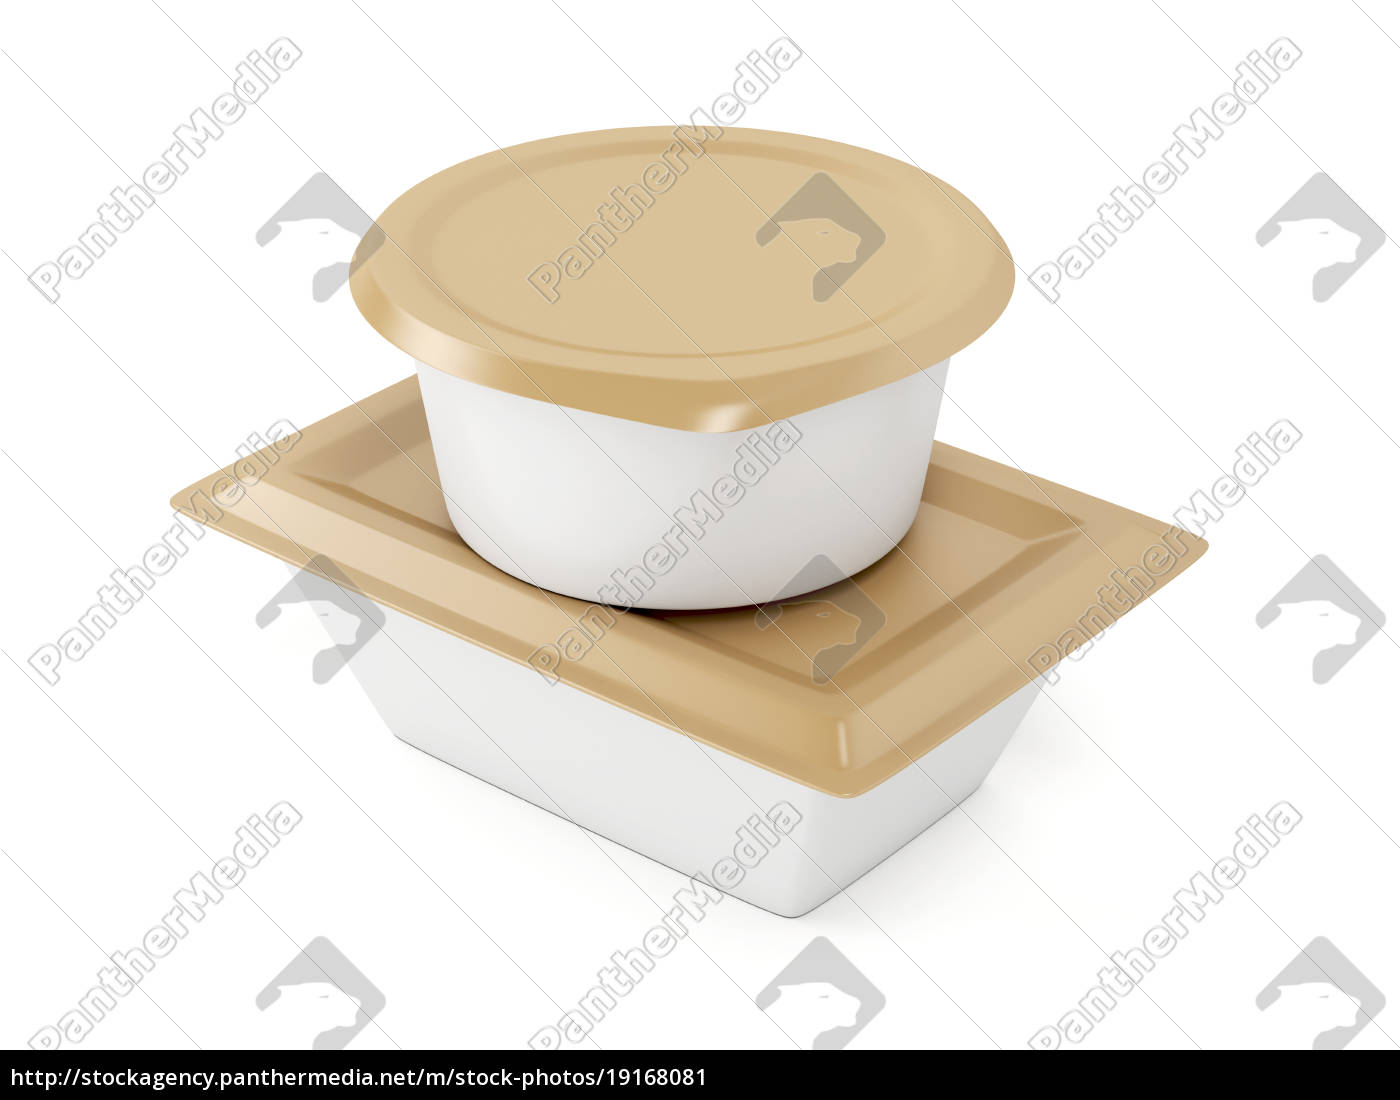 plastic, containers - 19168081